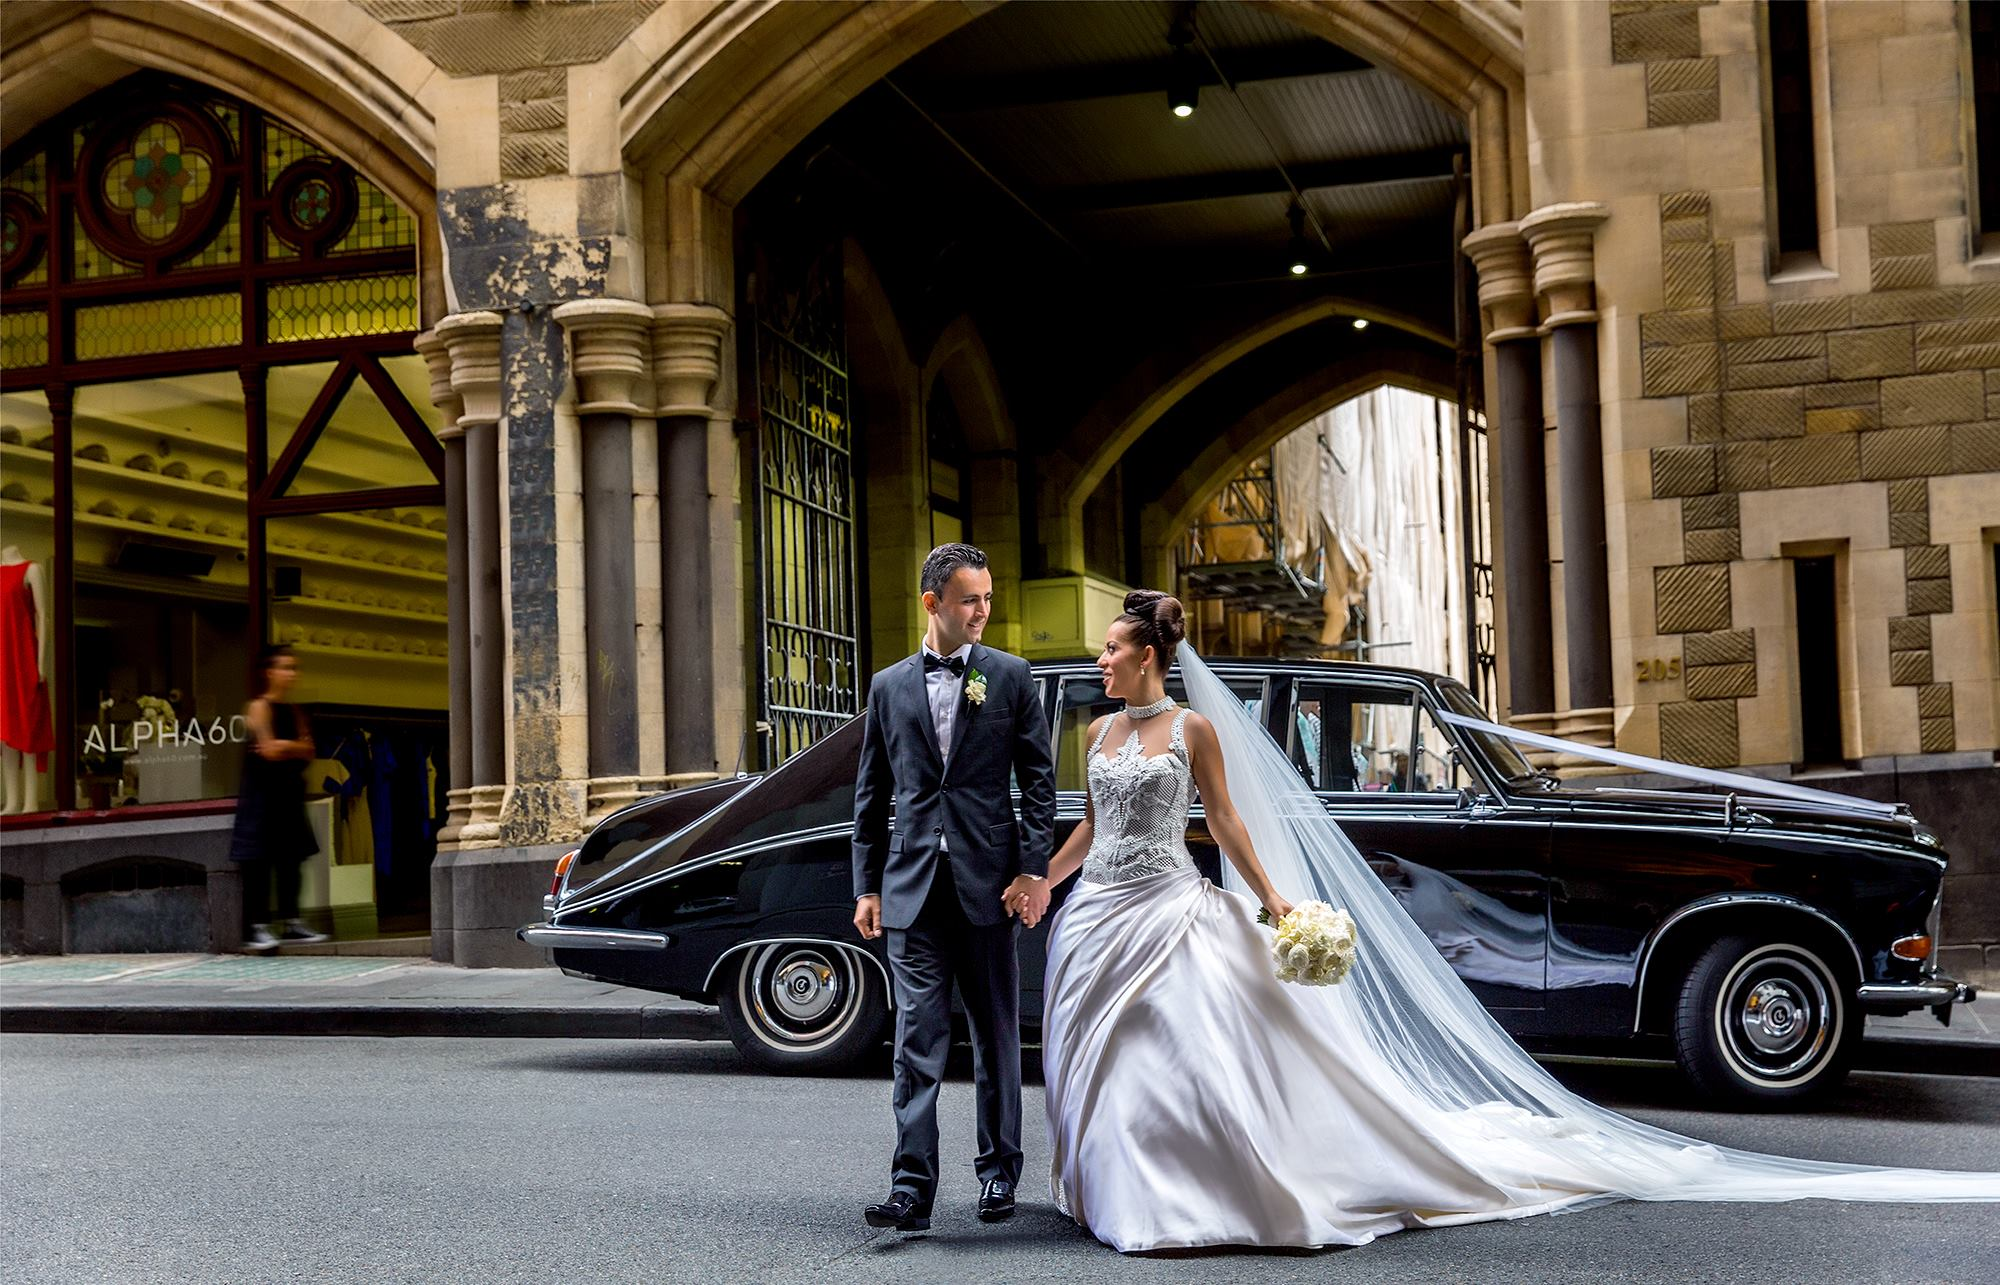 Triple R Luxury Car Hire Wedding Transport Matt Jefferies